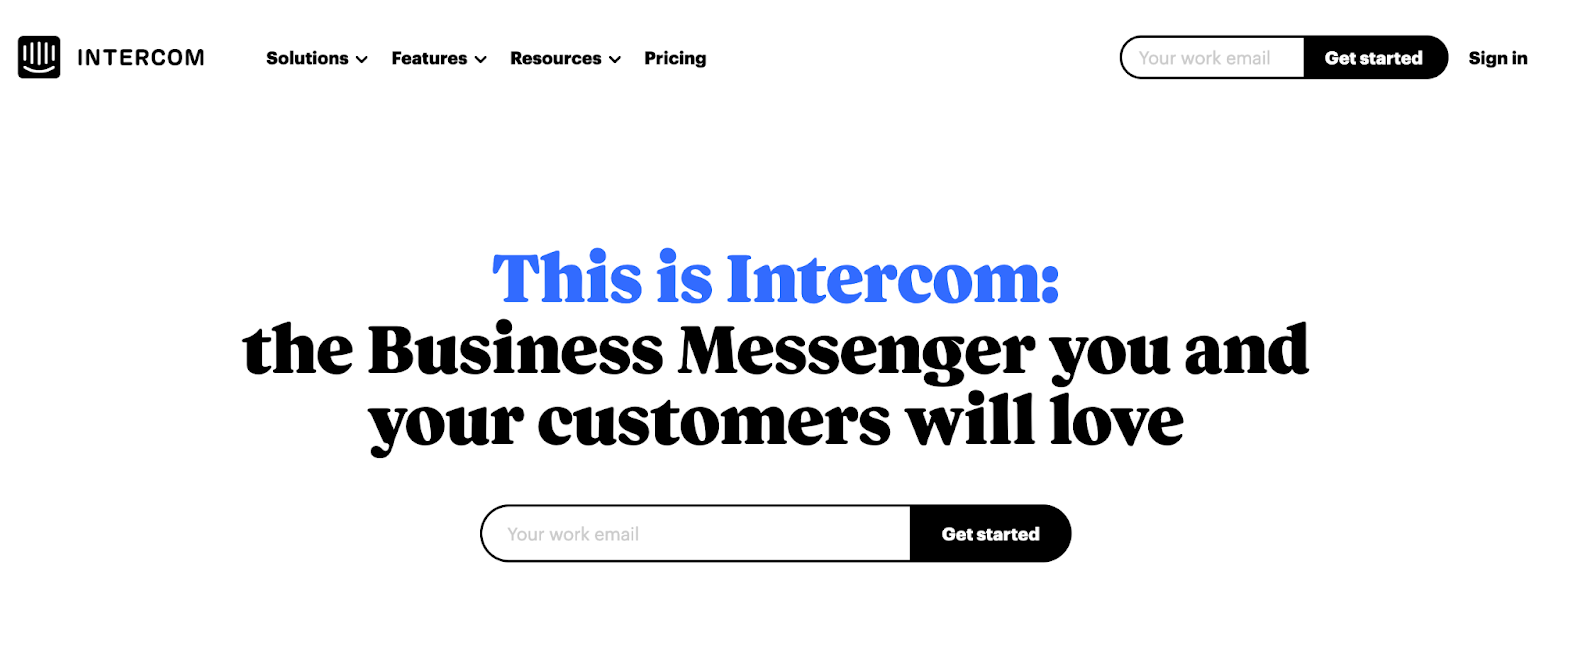 """Example of good pain point positioning in B2B SaaS - """"This is Intercom: the business messenger you and your customers will love"""